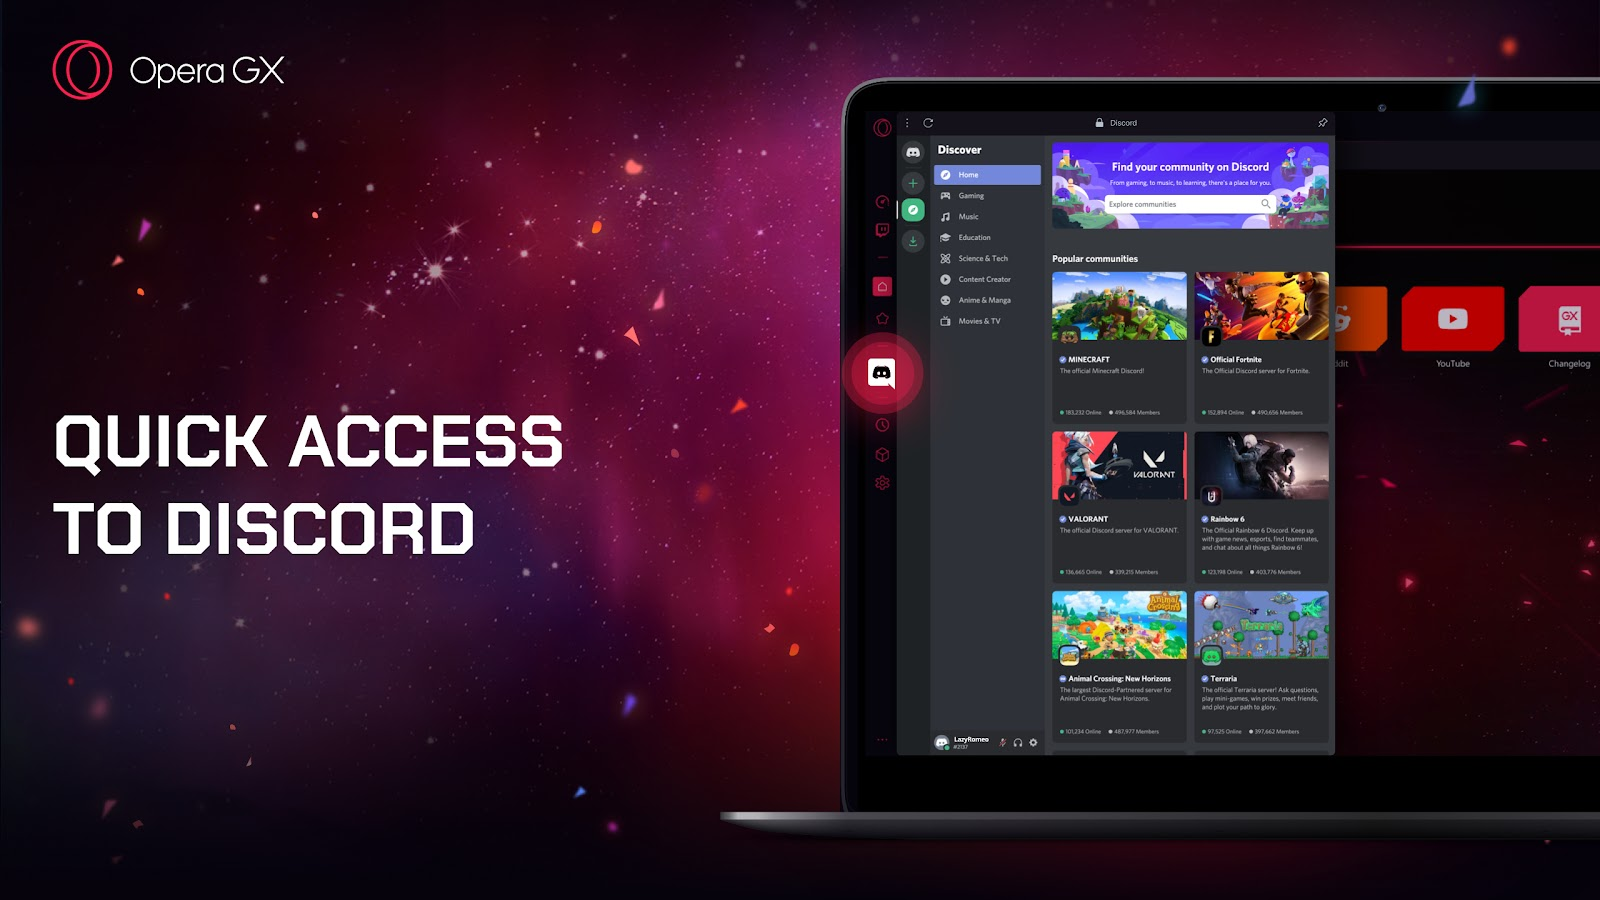 World's first gaming browser Opera GX adds Discord support in major 1st  birthday release - Opera Newsroom